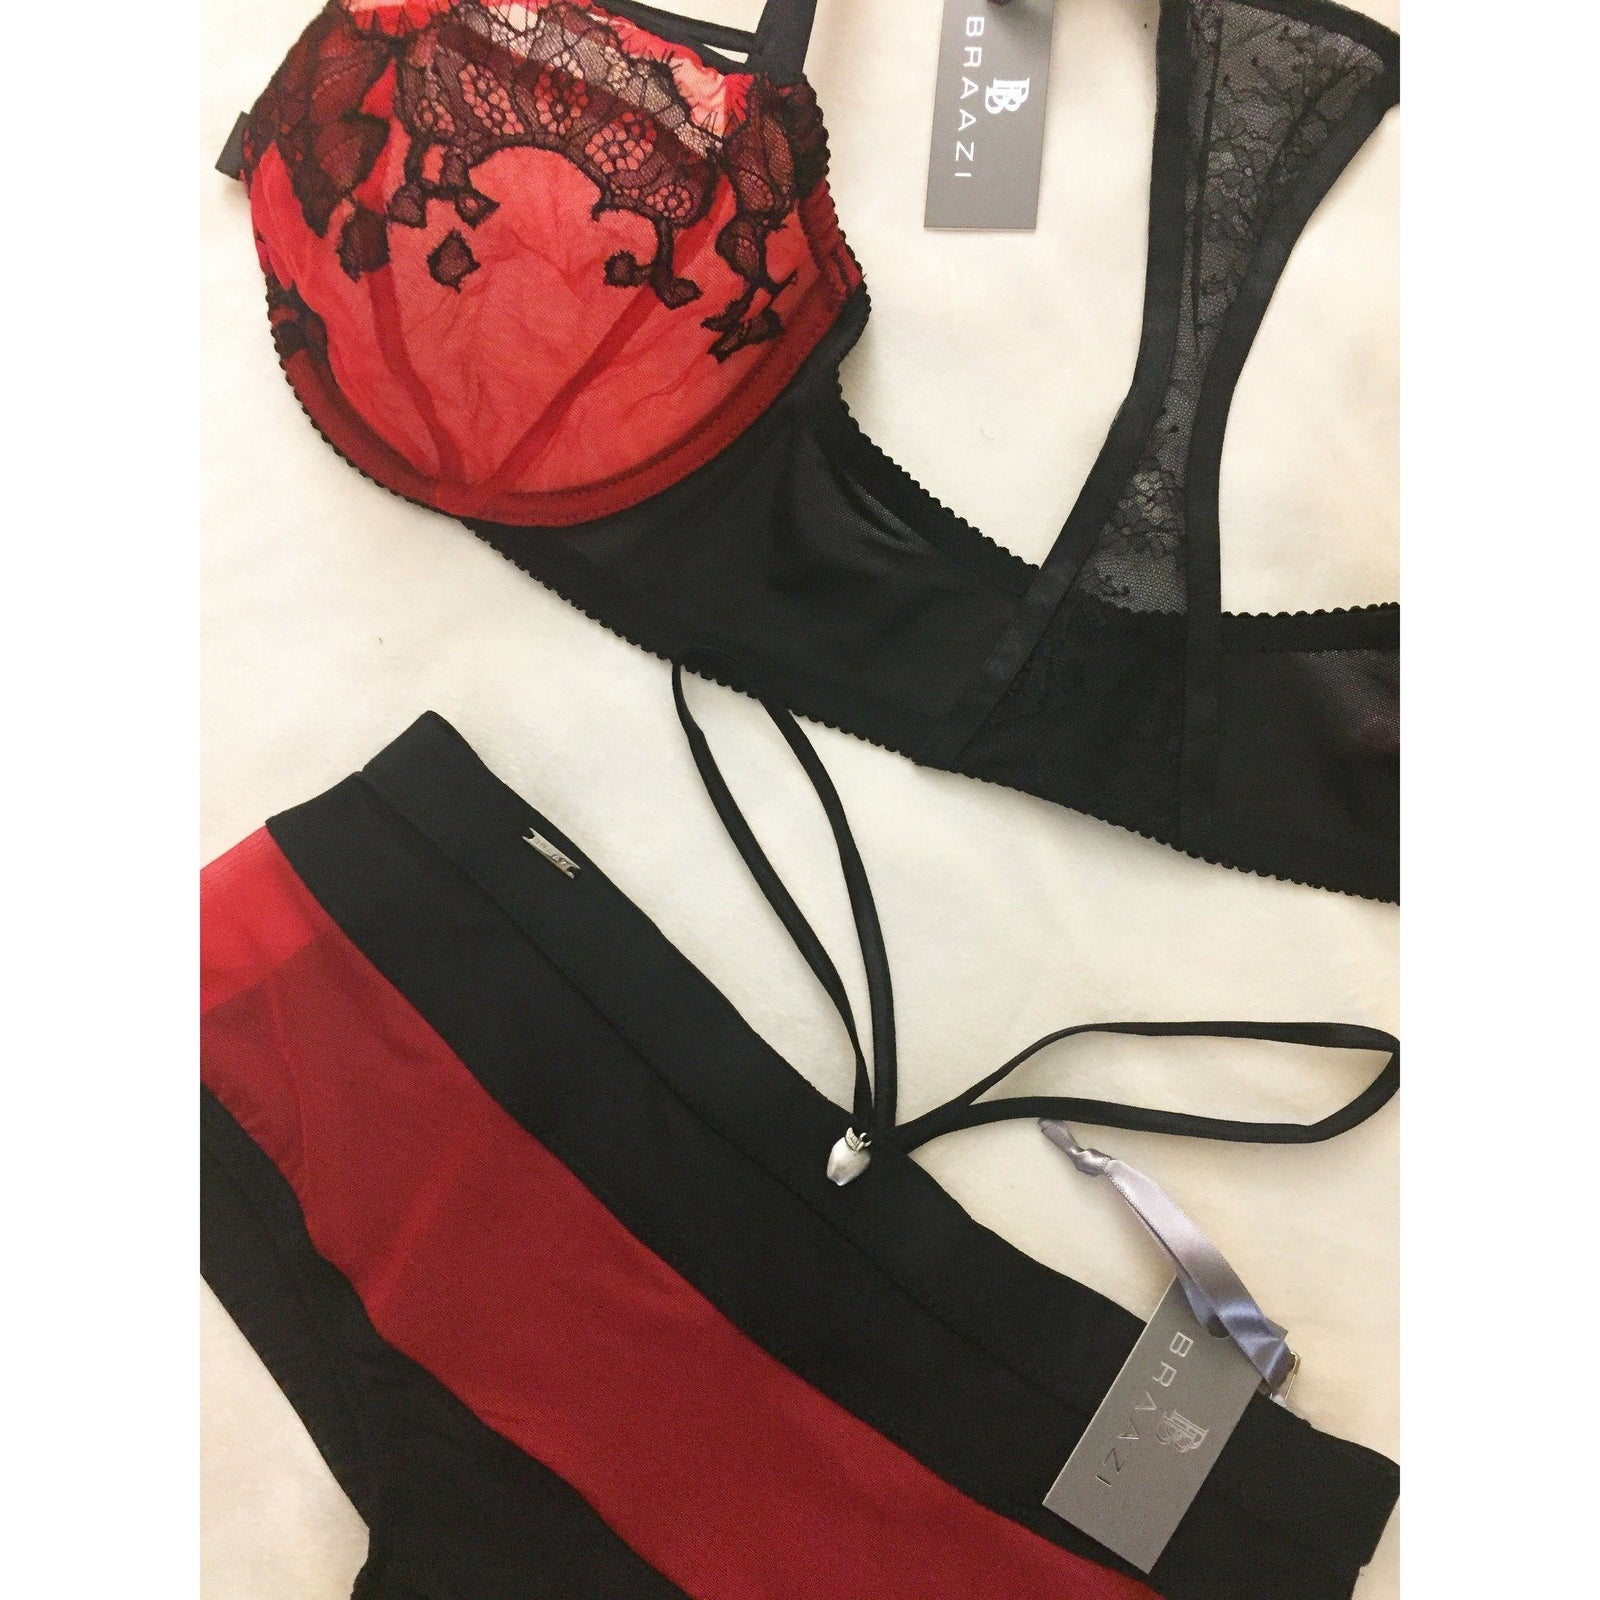 Lingerie Set - Amber Kai Tailor Bra With Bondage Straps & Audrie Diana Brief In Scarlet/Black